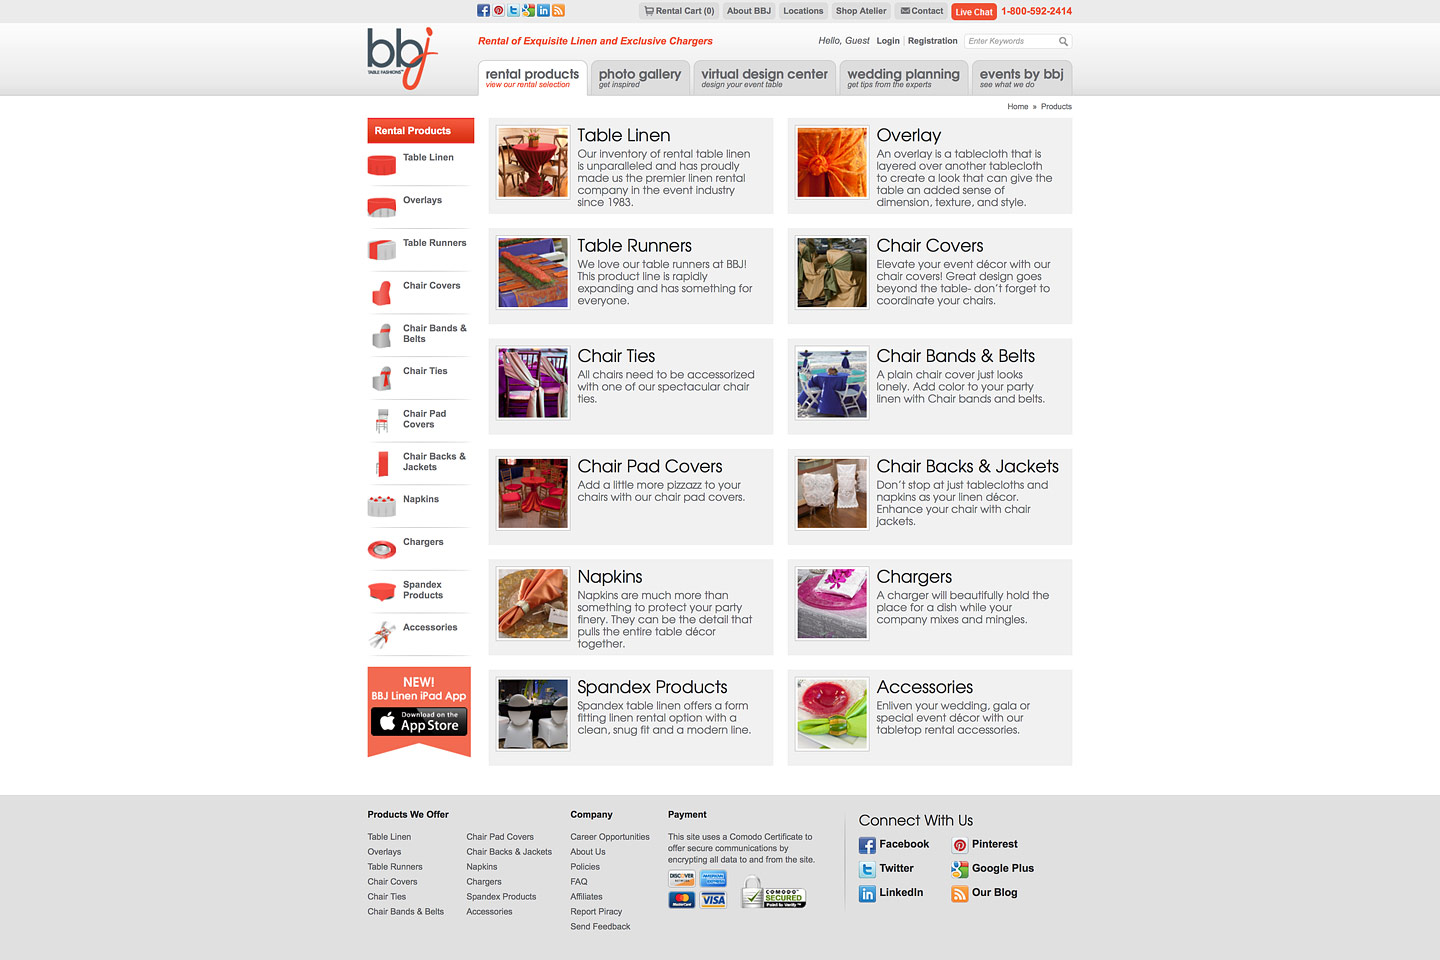 a screen capture of the bbjlinen.com rental products landing page, featuring thumbnail images for each product category